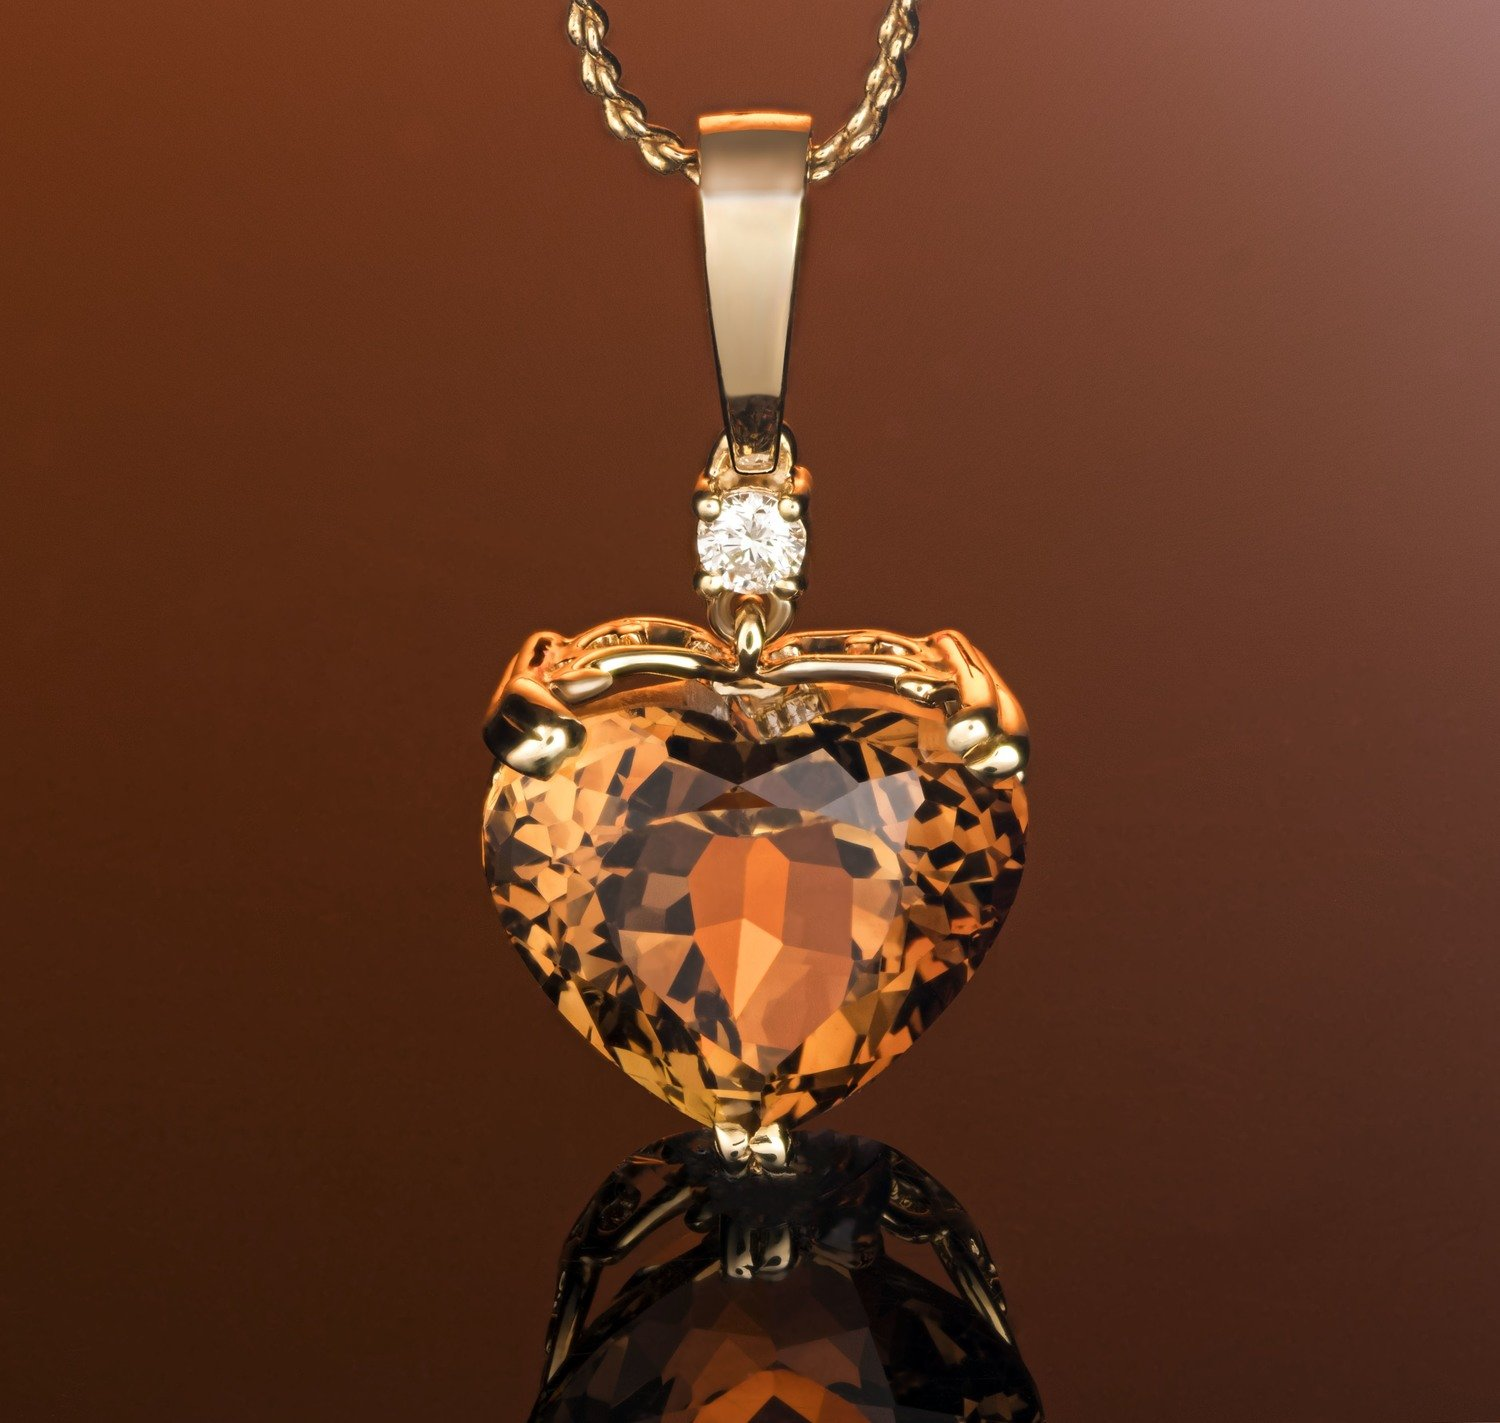 Gorgeous Champagne Topaz Heart with Diamond Accent 14k Solid Yellow Gold Pendant - One-of-a-Kind!